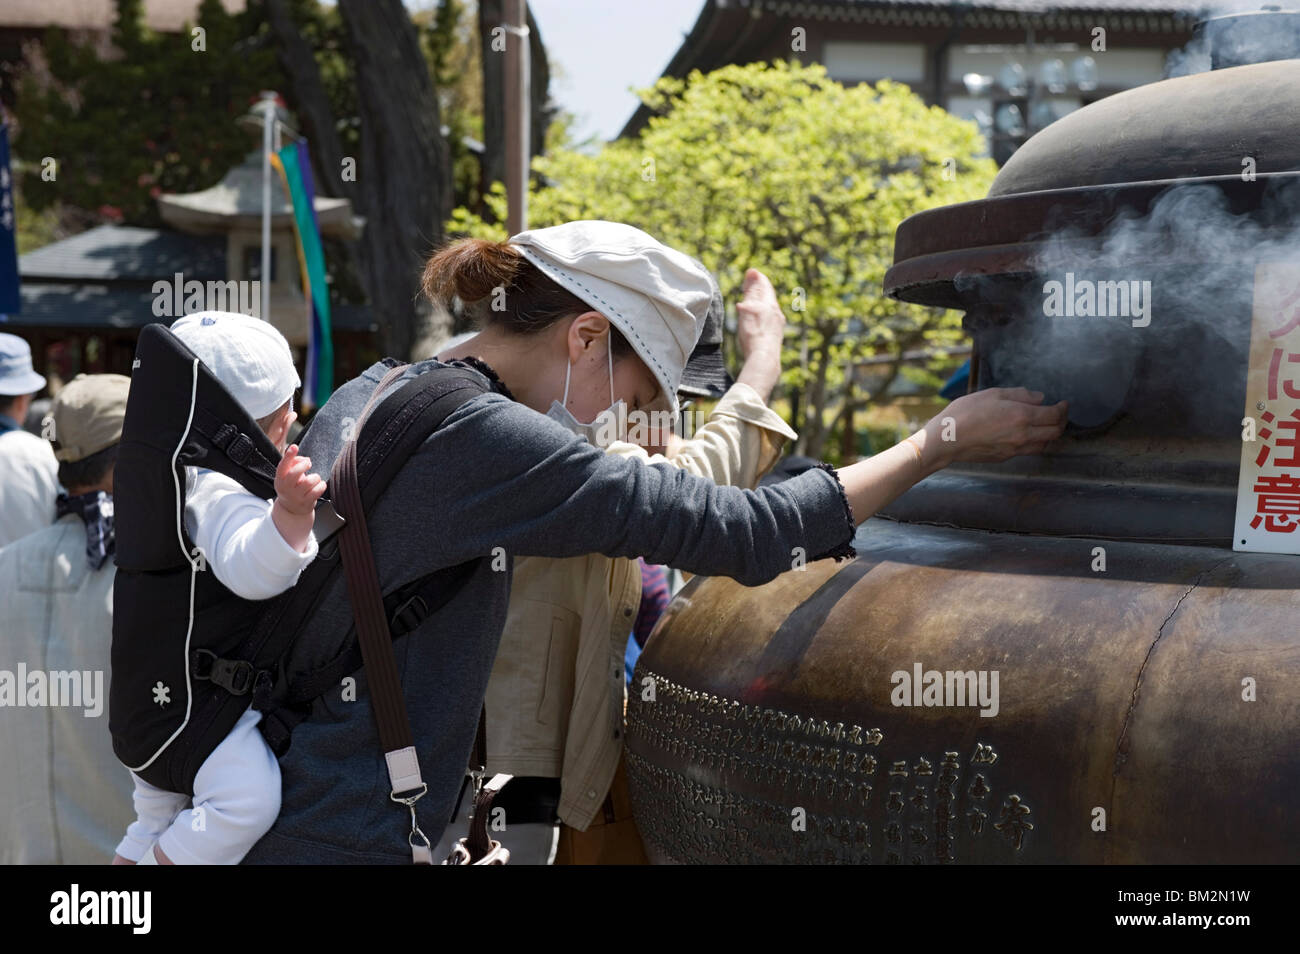 Mother with baby using incense smoke to cure bodily ailments at Zenkoji Temple, Nagano City, Japan - Stock Image